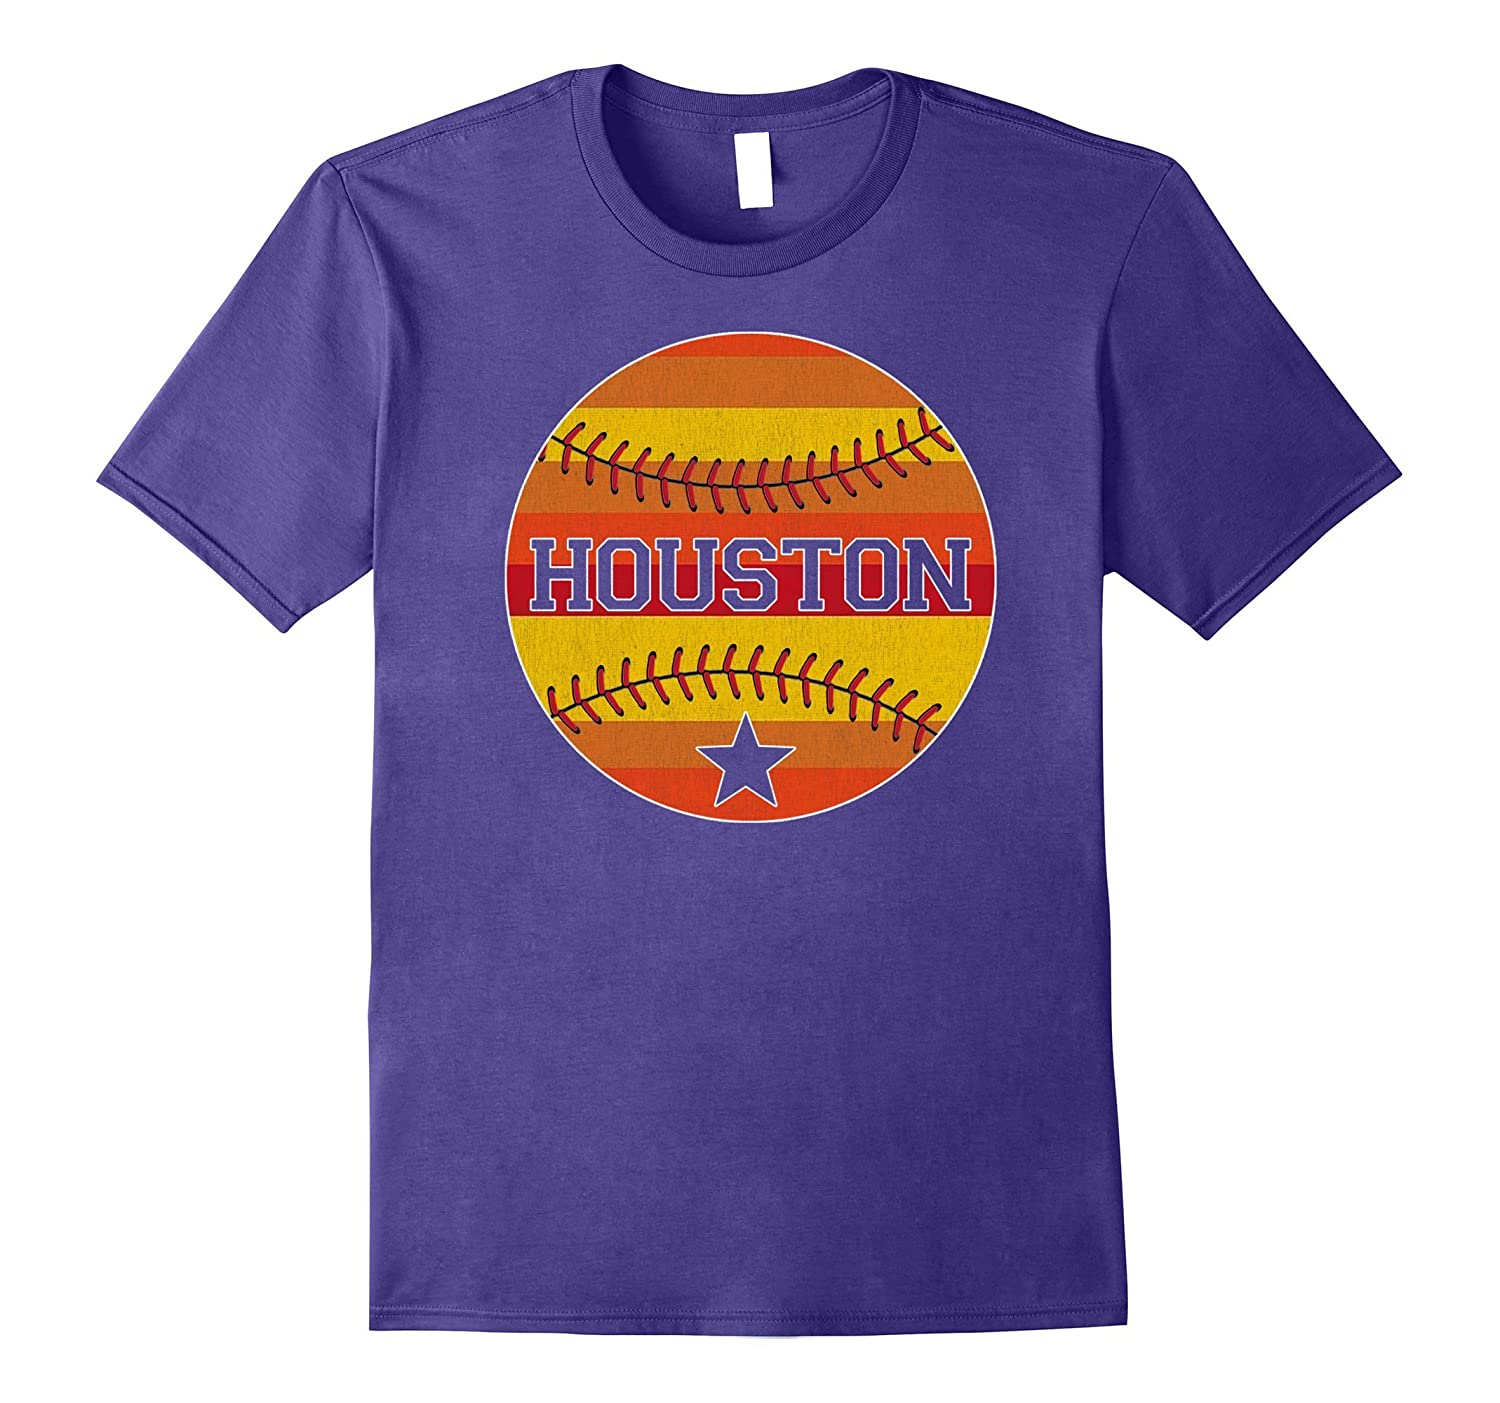 Retro Vintage Houston Baseball Throwback Astro Stripe Shirt-T-Shirt